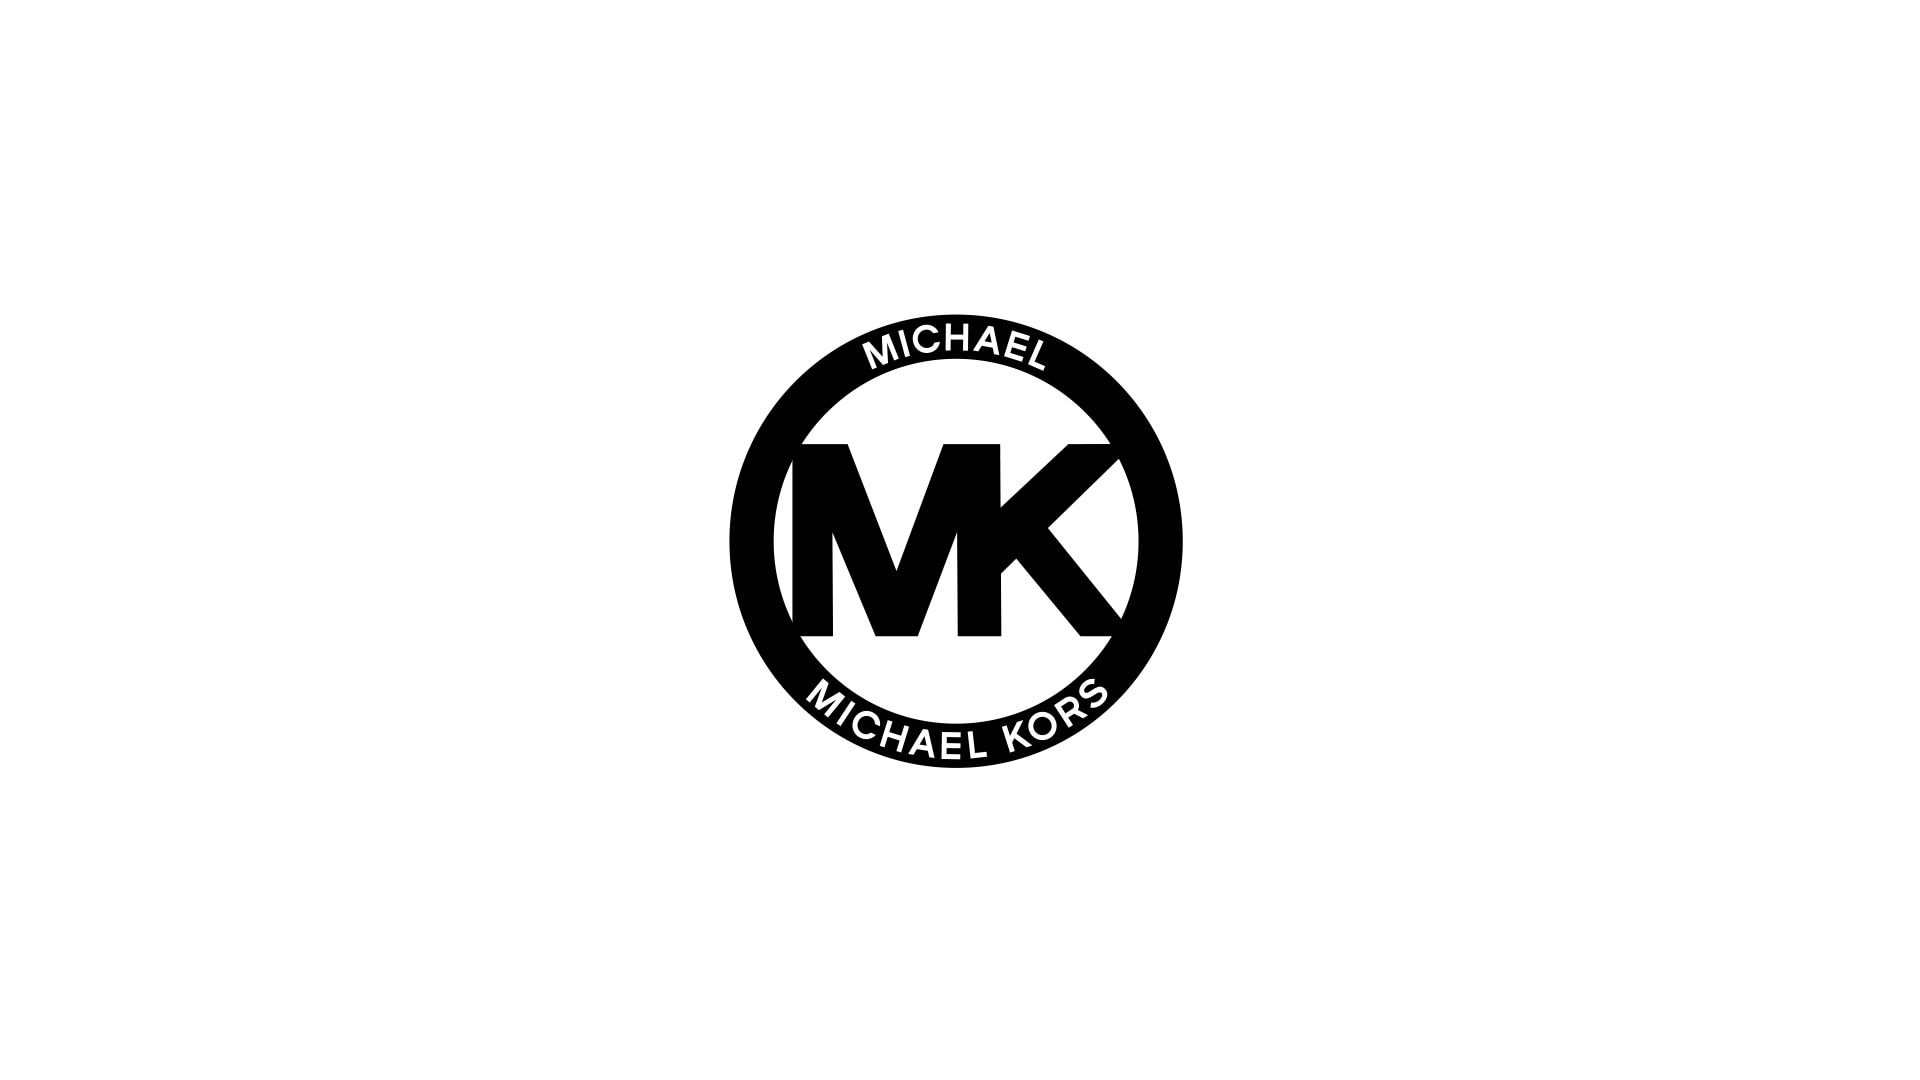 MK Logo - Michael Kors Usa: Designer Handbags, Clothing, Menswear, Watches ...